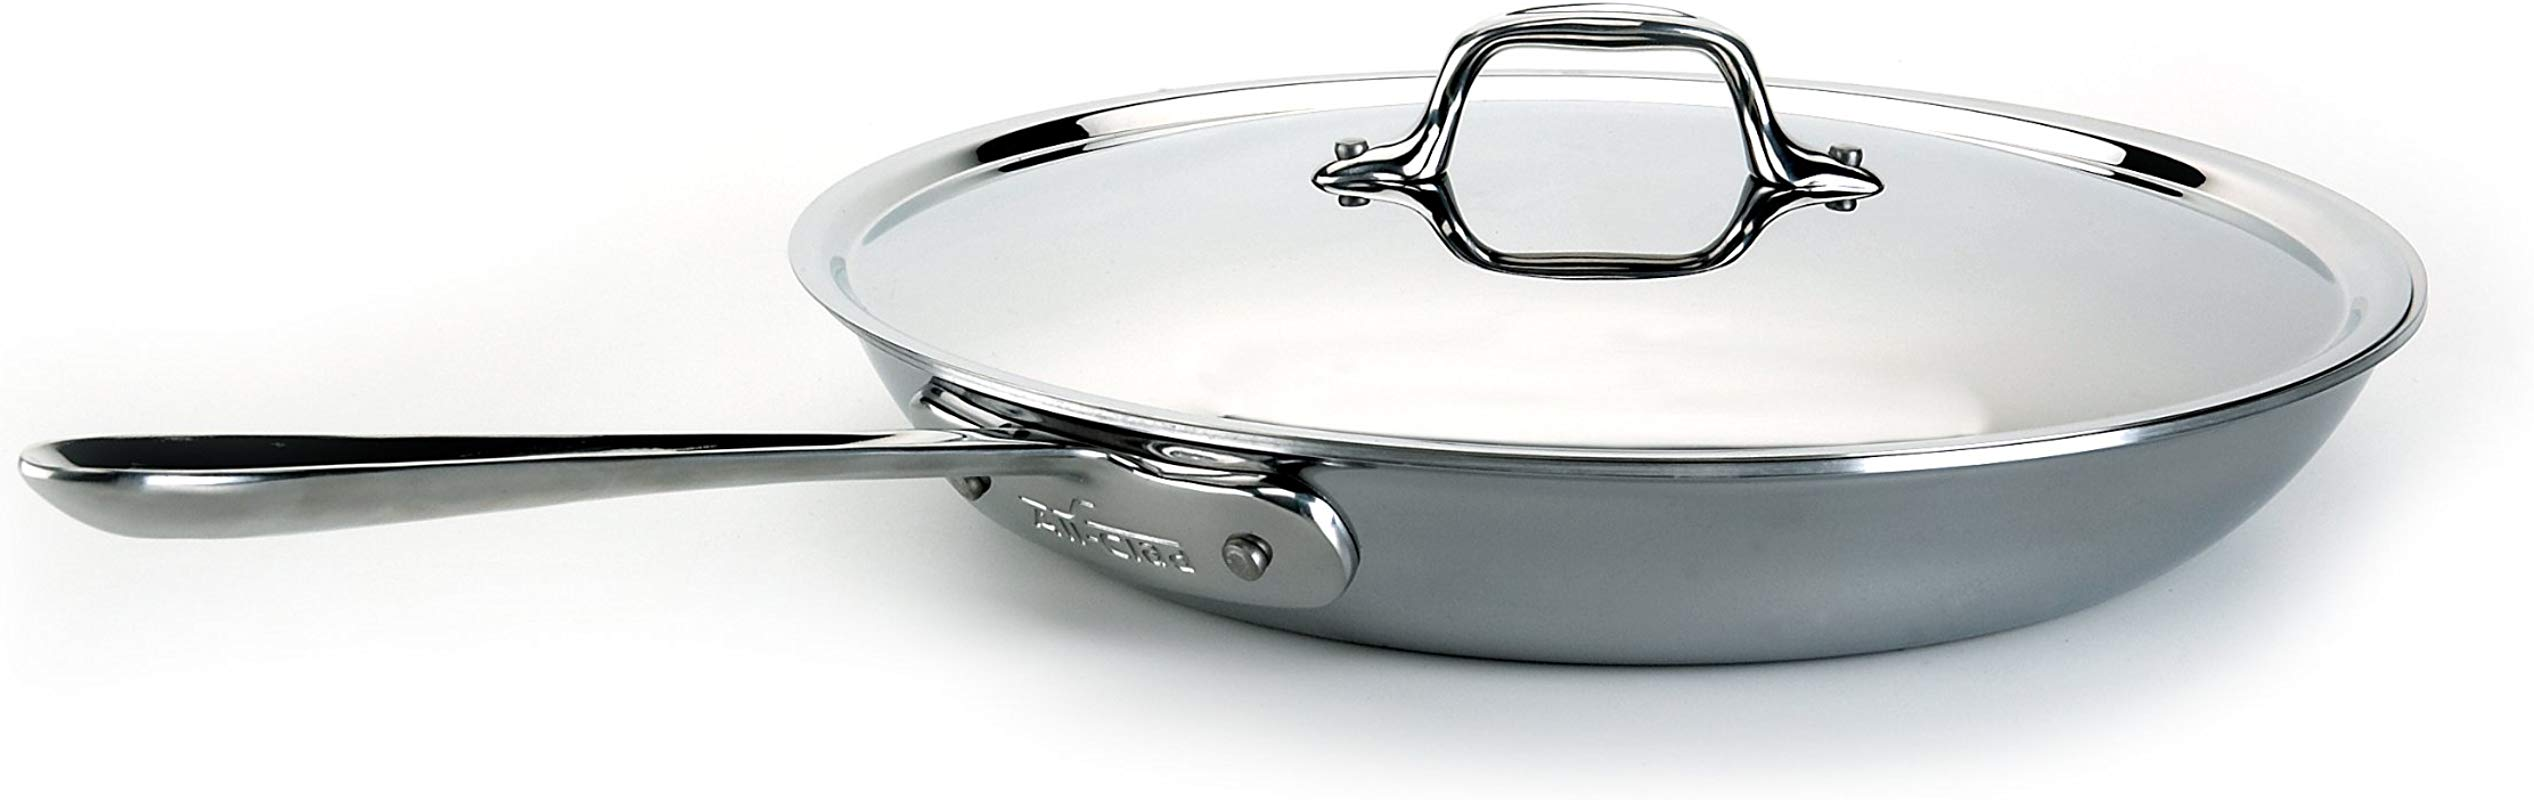 All Clad 51125 All Clad Stainless Steel 12 Inch Fry Pan With Lid